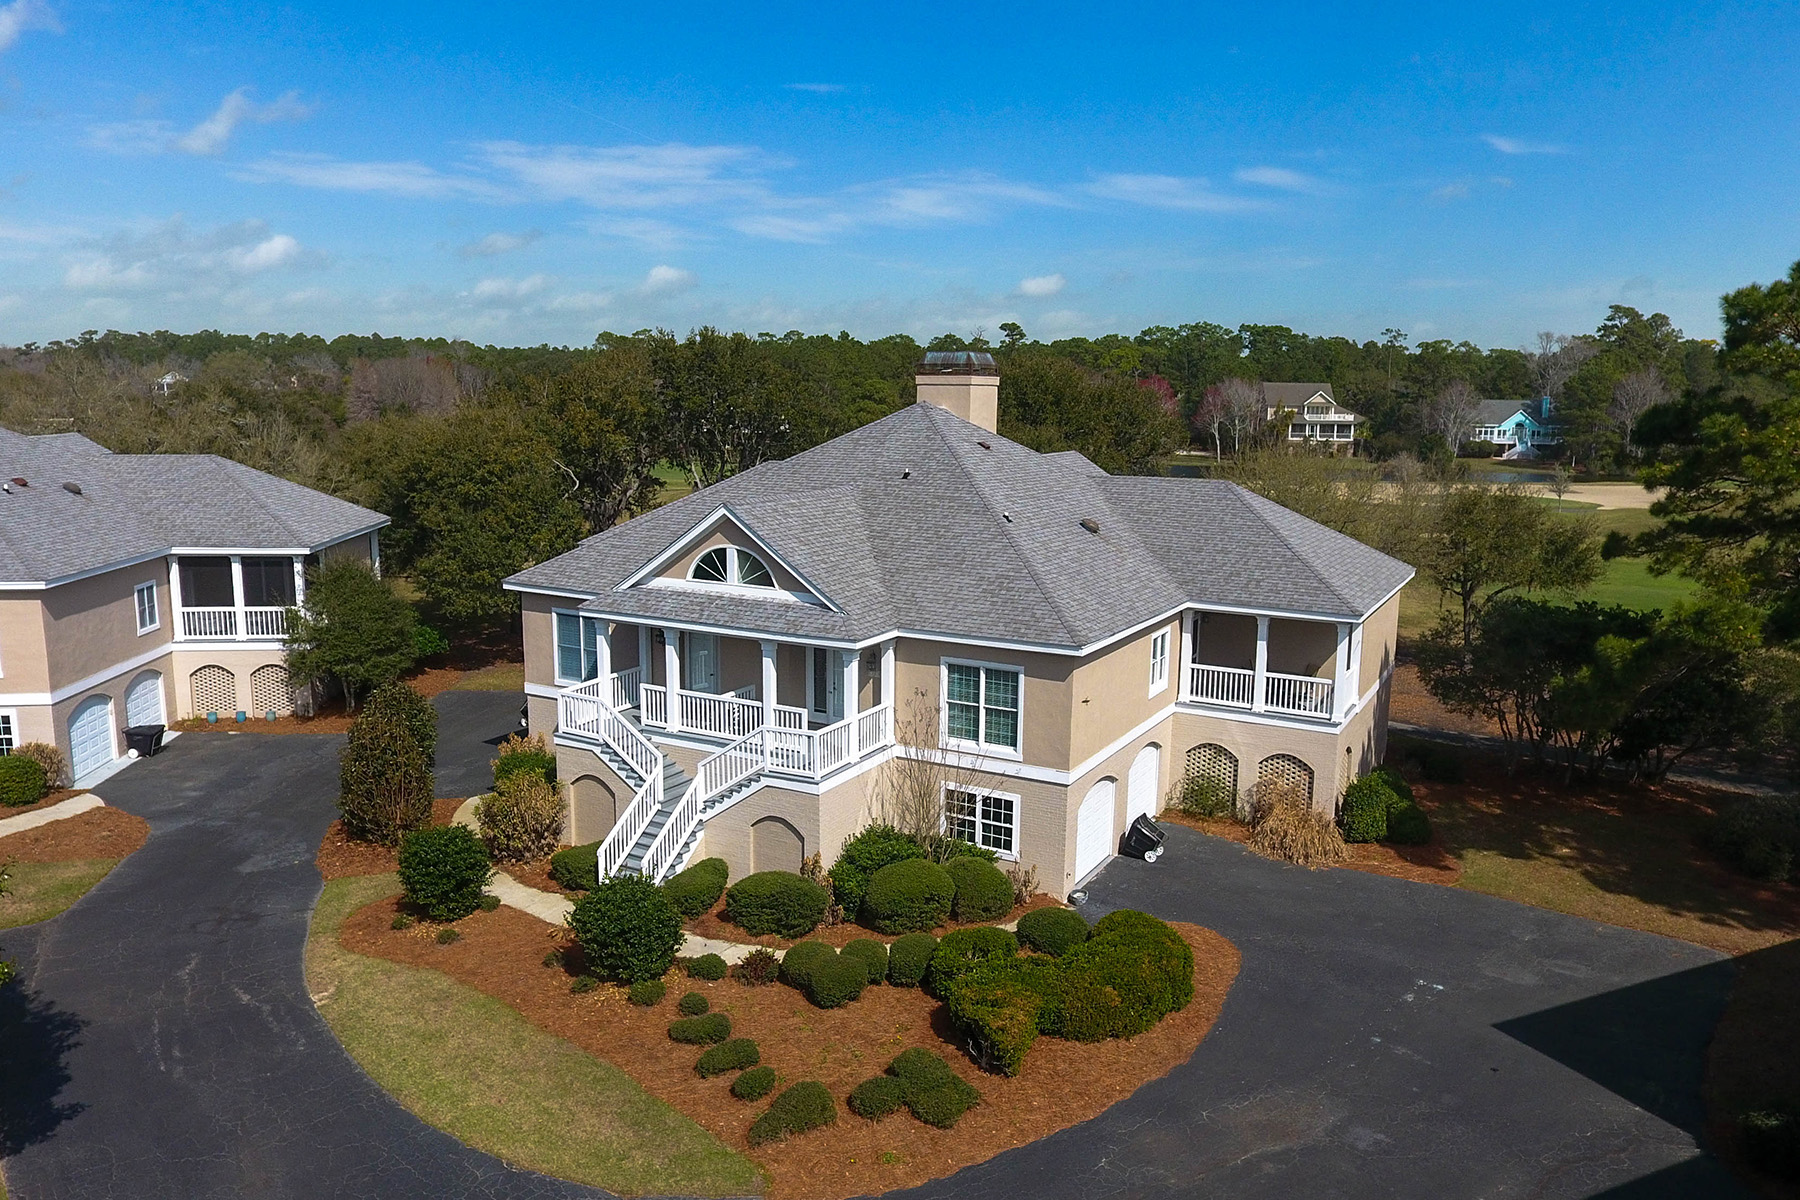 Condominium for Sale at 104 Collins Meadow Dr., Georgetown, SC 29440 104 Collins Meadow Dr. 15 Georgetown, South Carolina 29440 United States